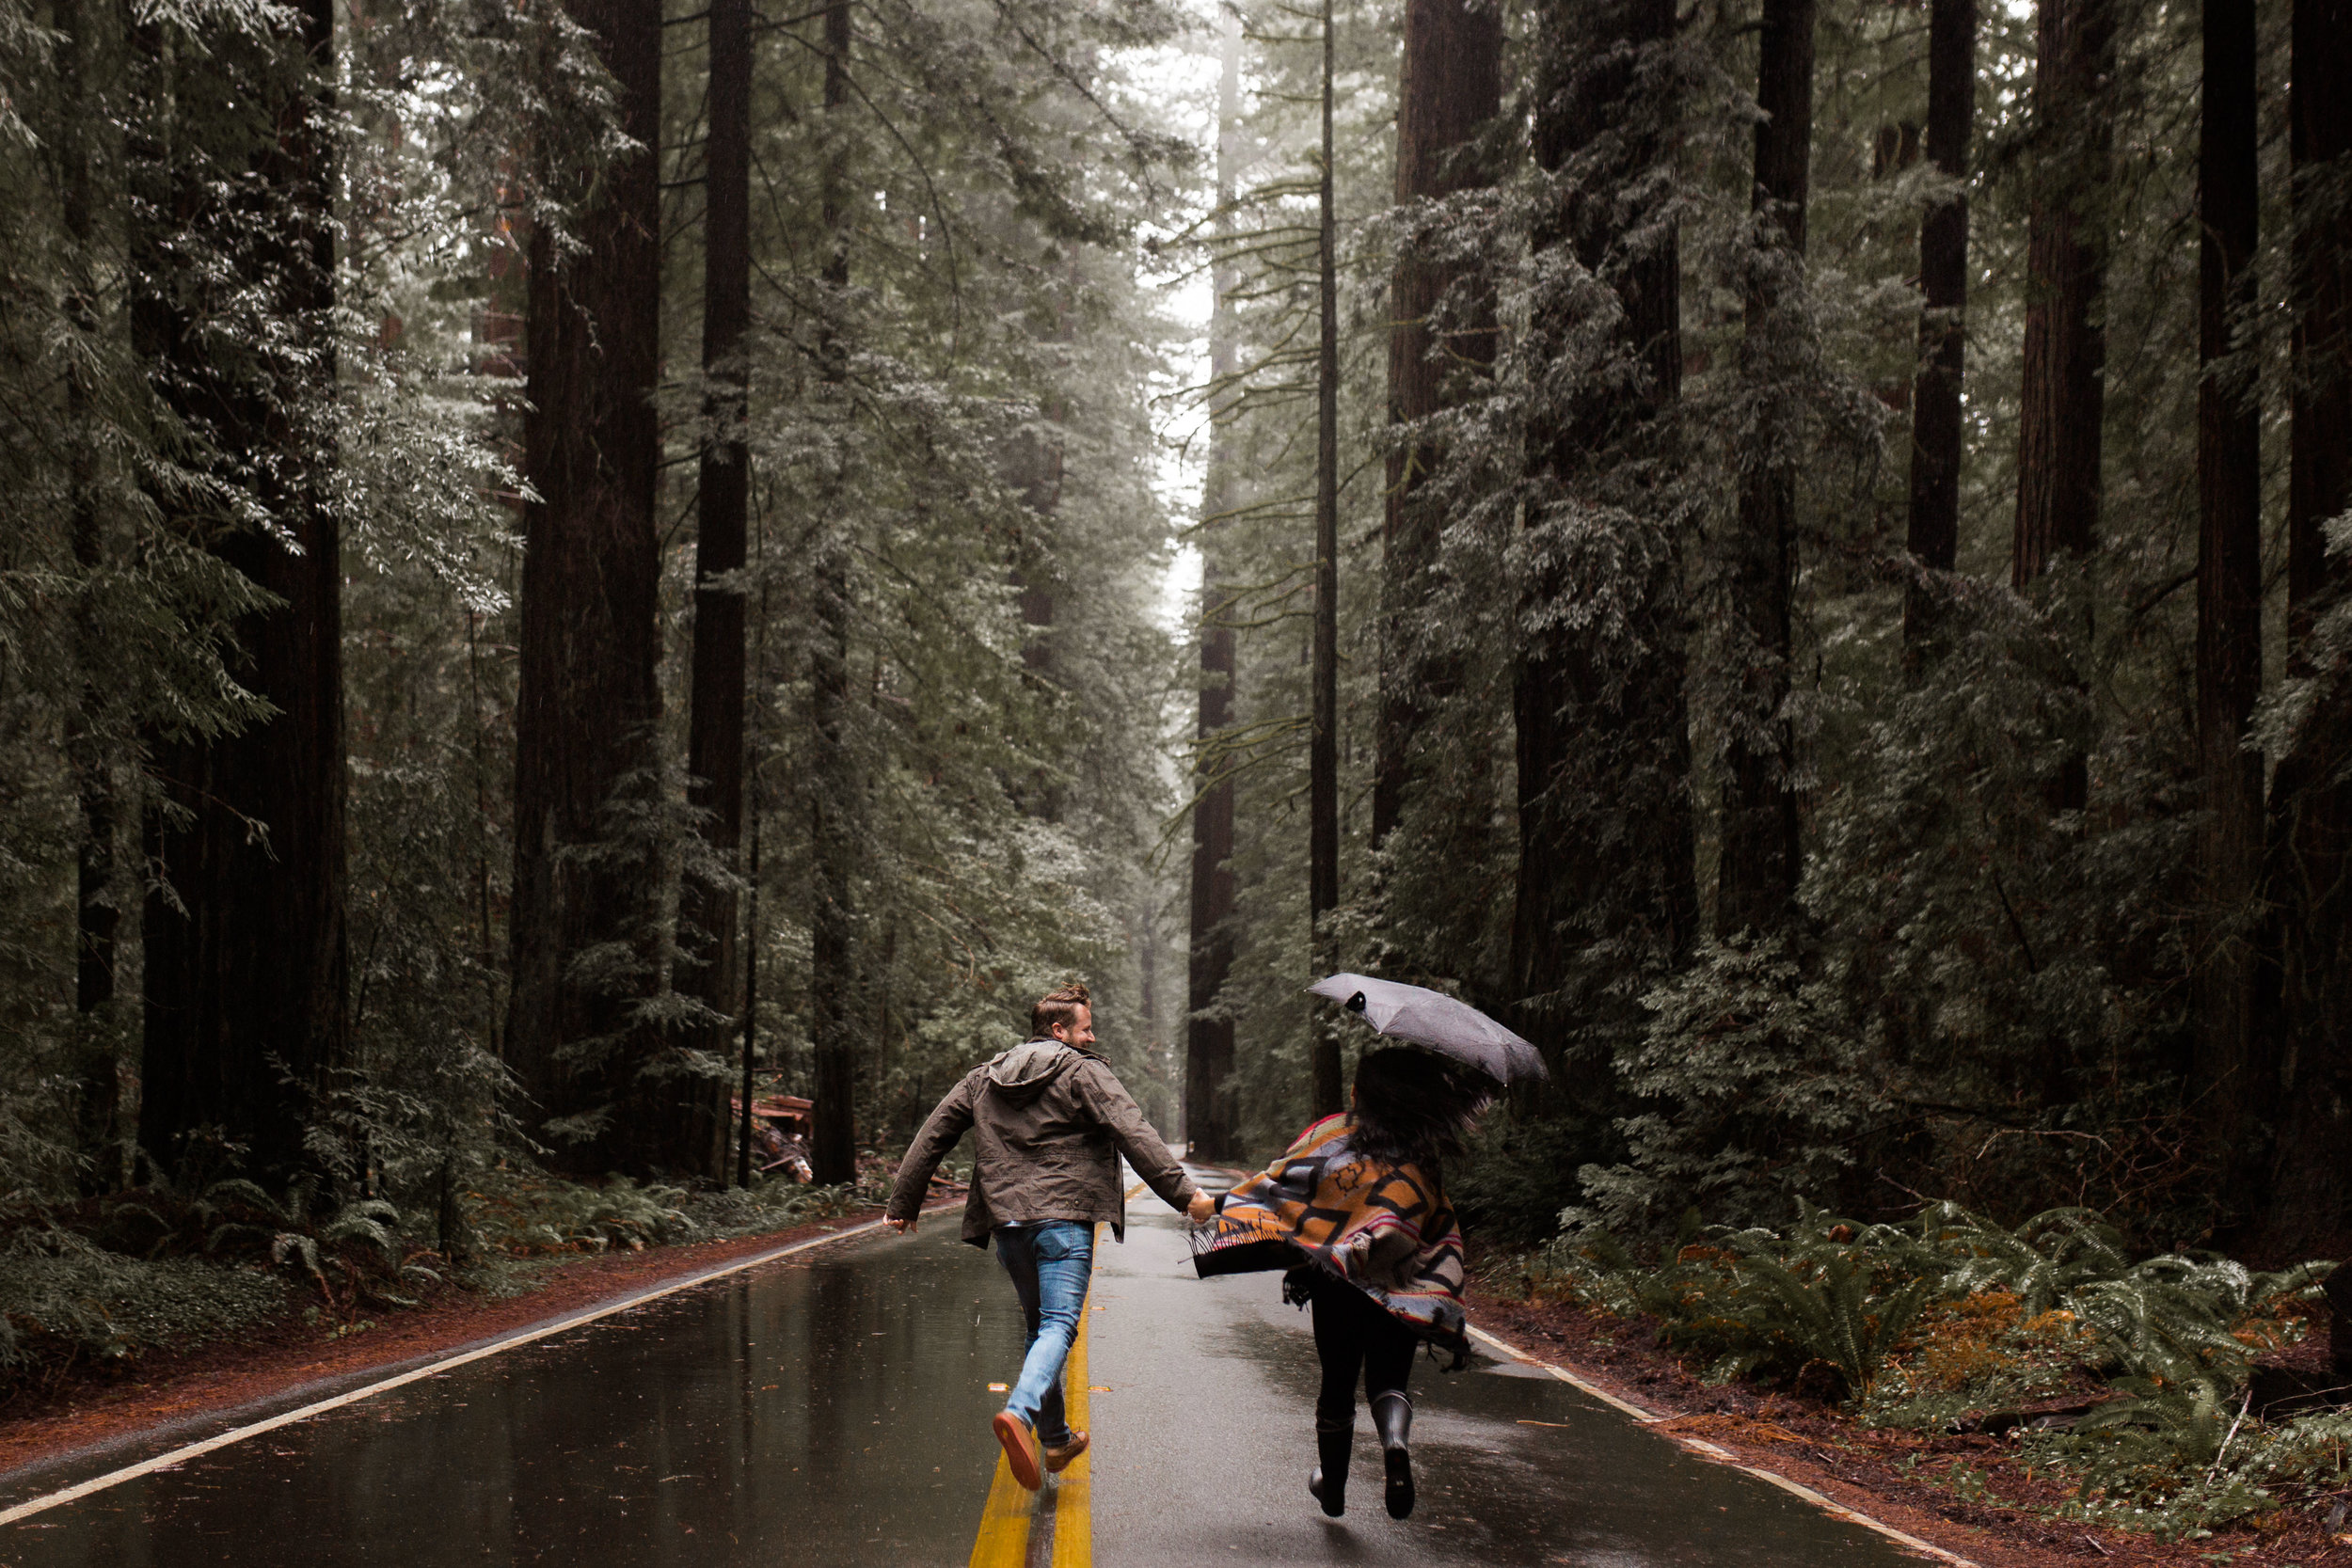 nicole-daacke-photography-redwoods-national-park-forest-rainy-foggy-adventure-engagement-session-humboldt-county-old-growth-redwood-tree-elopement-intimate-wedding-photographer-1.jpg